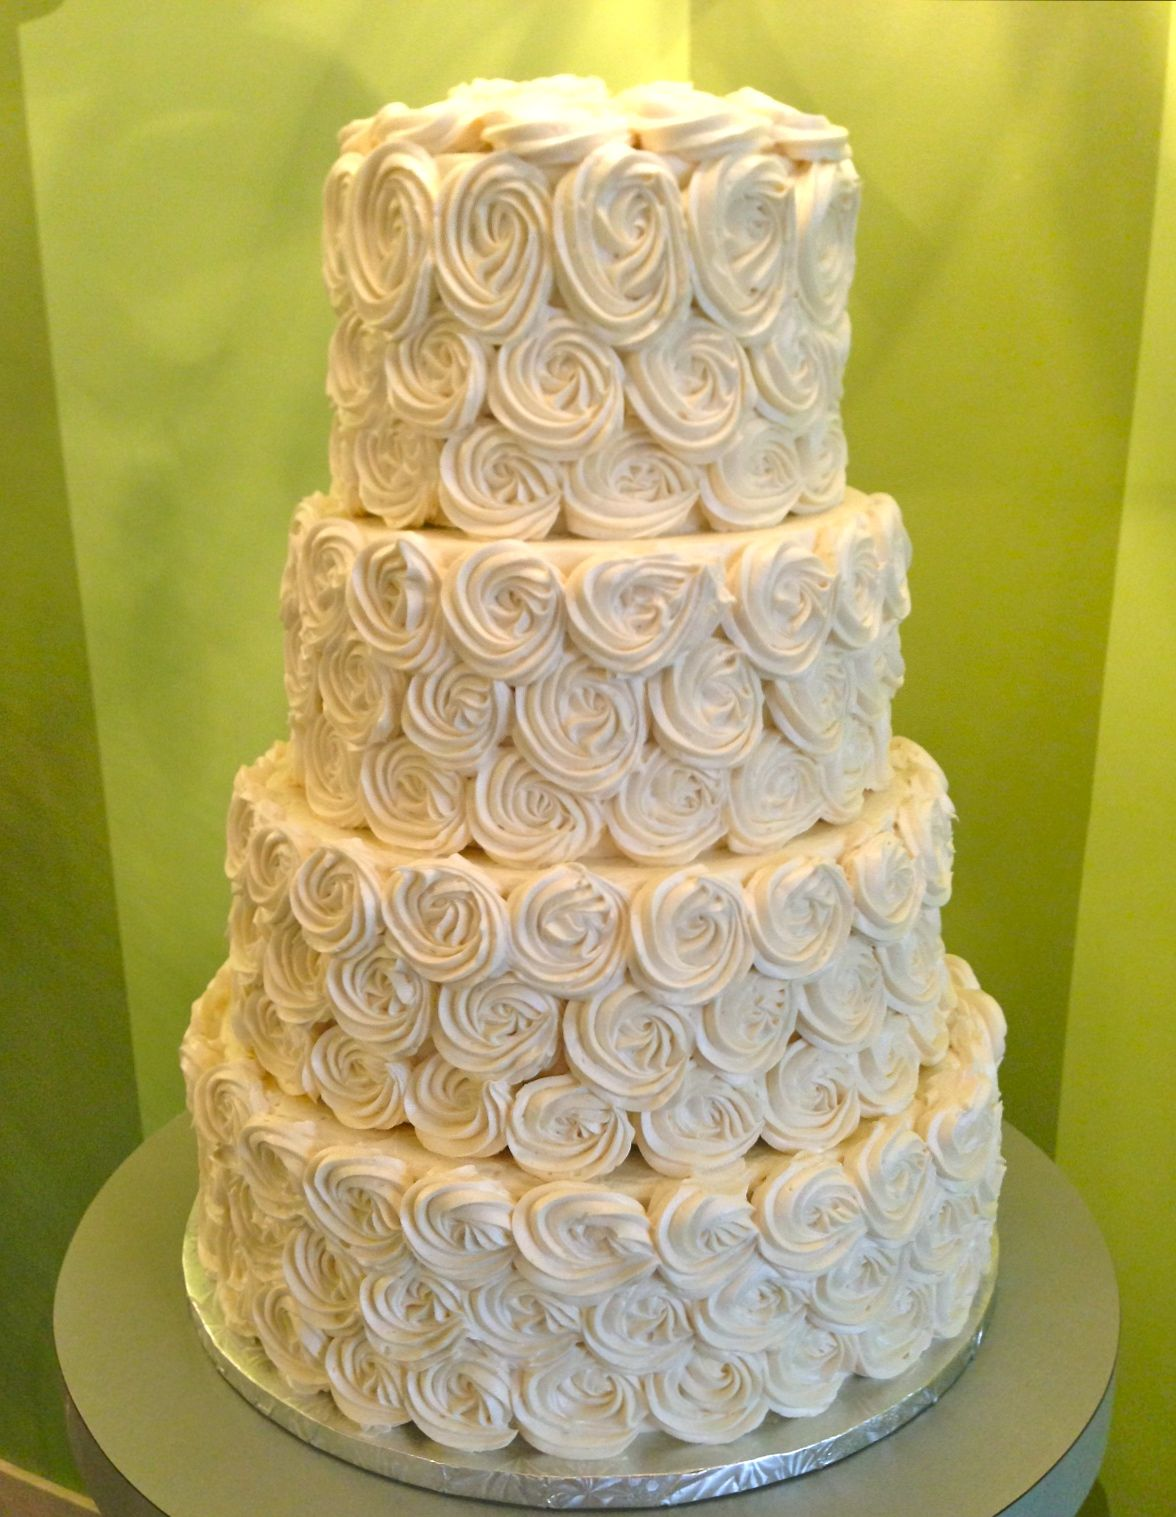 3 tier wedding cakes with buttercream blossoms